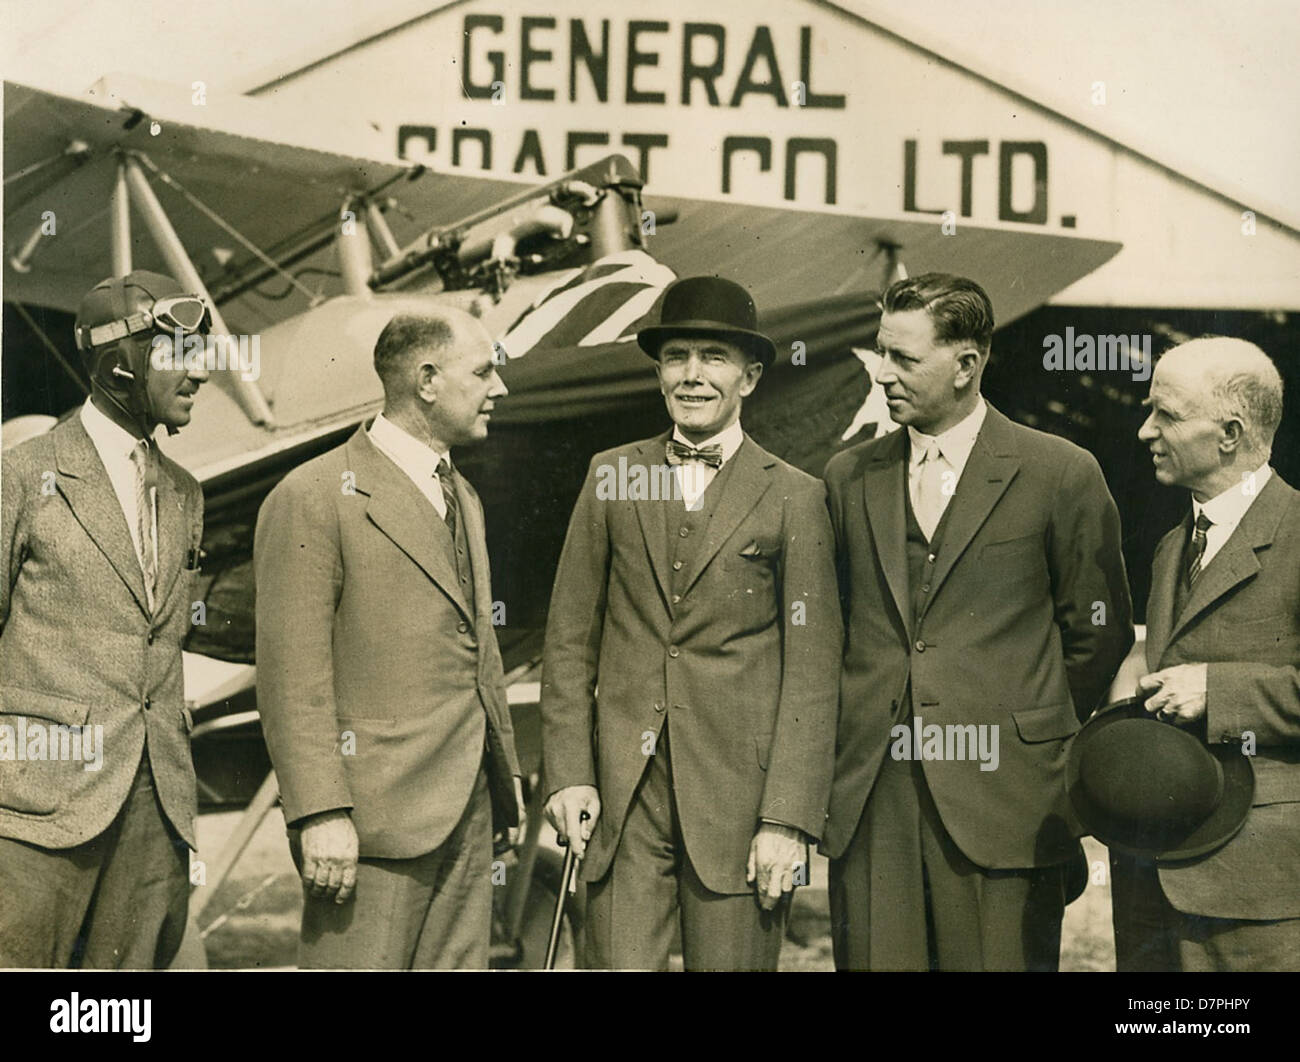 Group on occasion of the testing of the 'Genairco', the first all-Australian built plane, 1930 - Stock Image